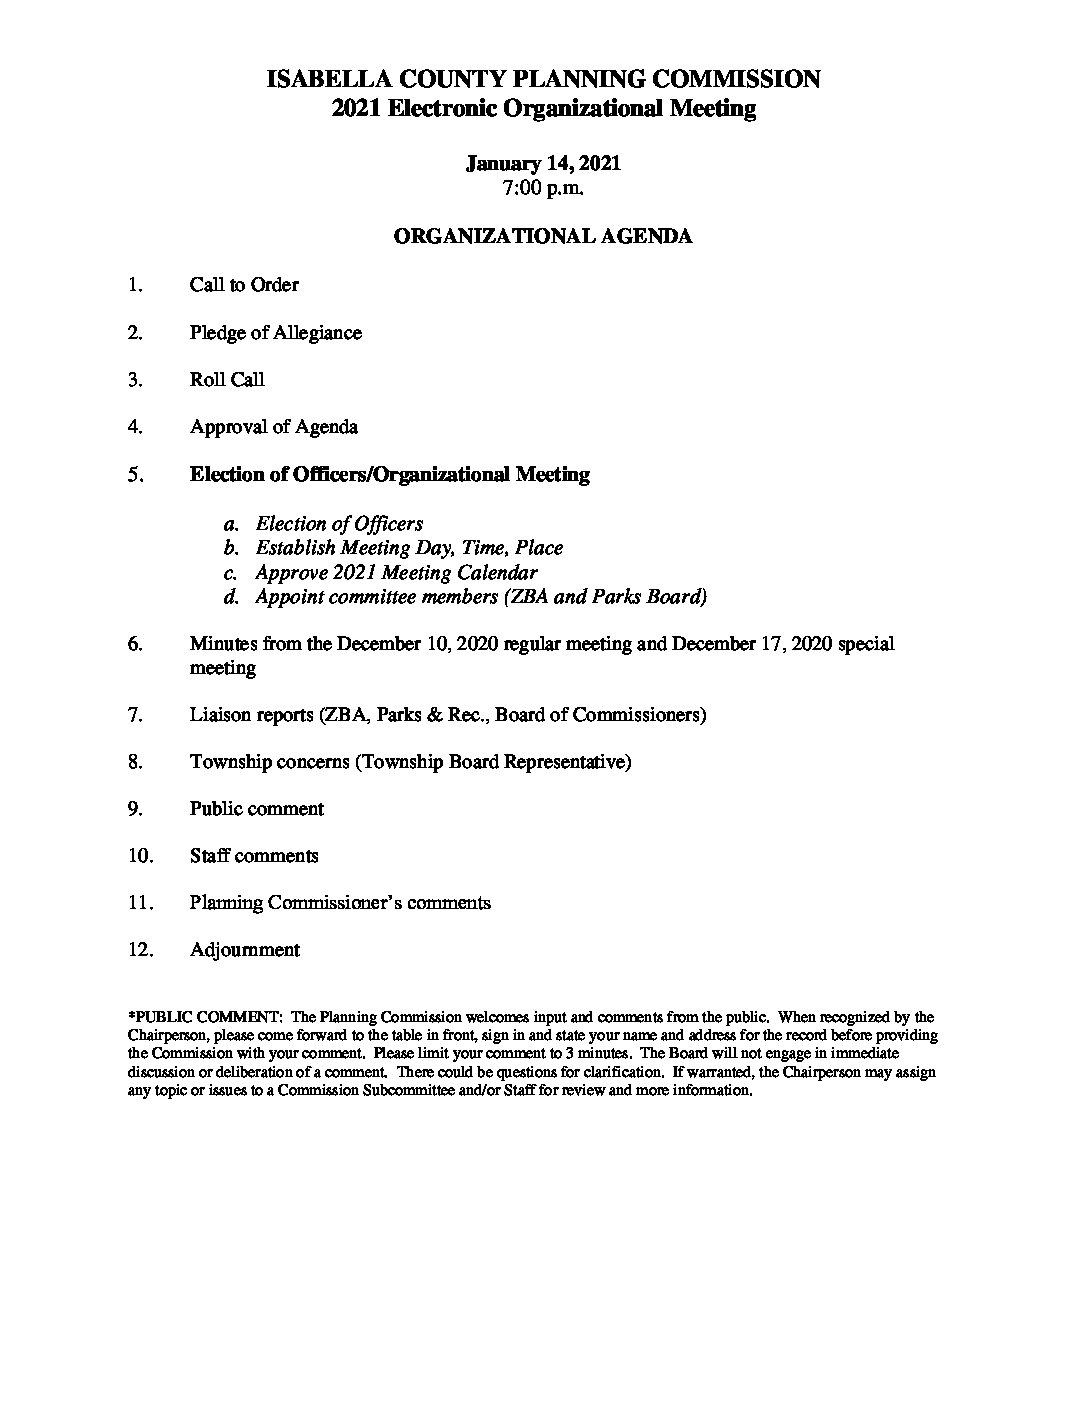 preview image of first page January 14, 2021 Planning Commission Agenda